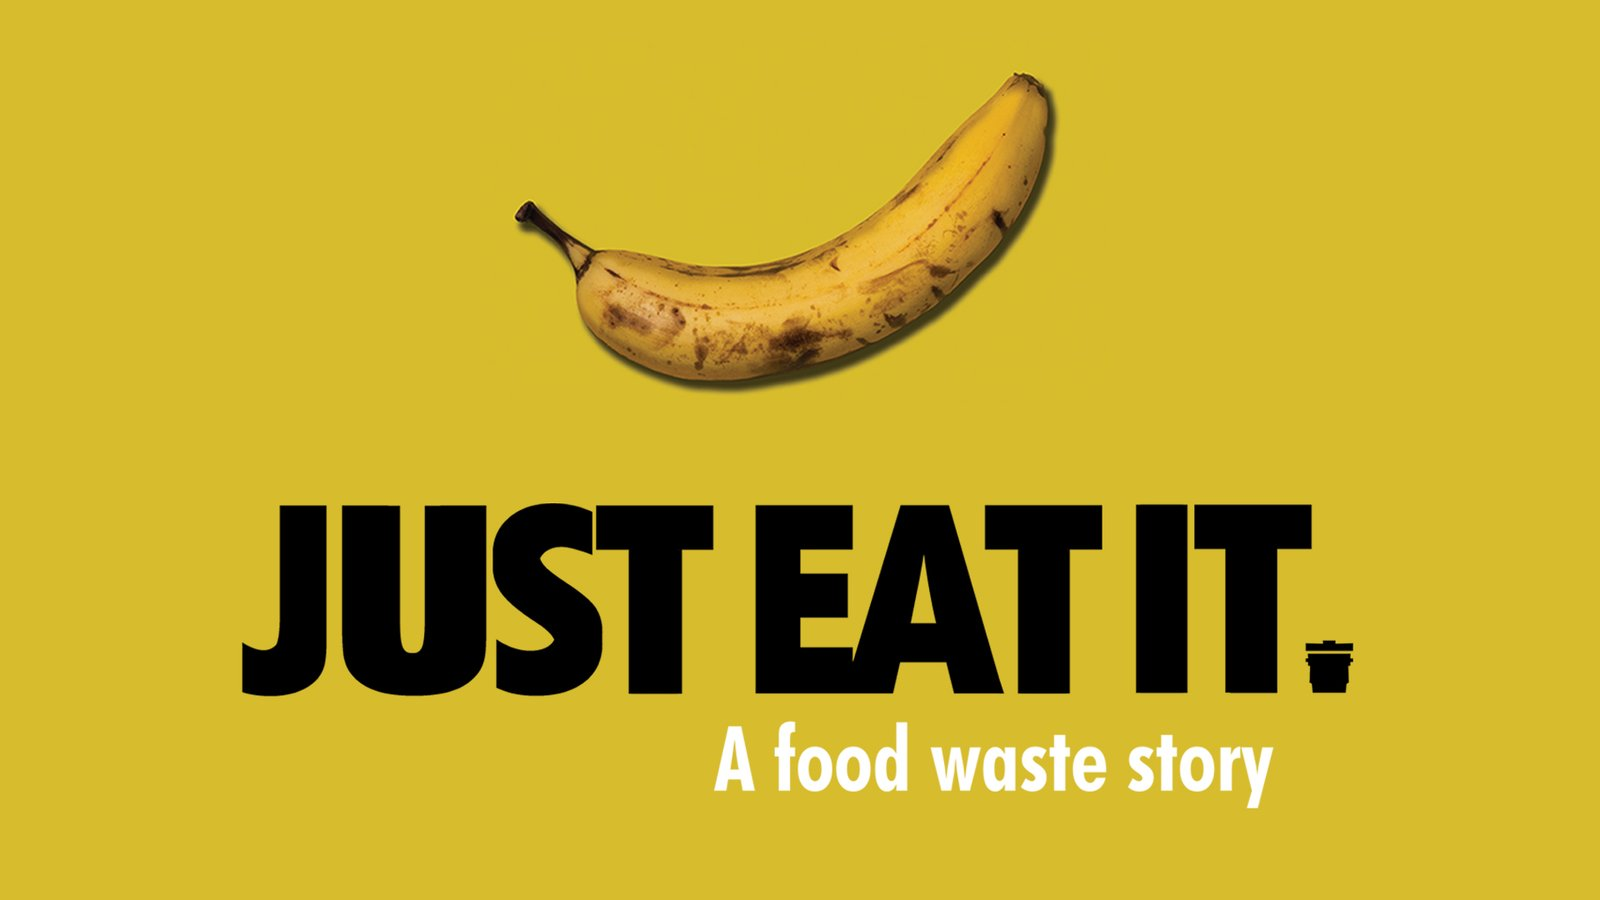 Just Eat It - A Food Waste Story